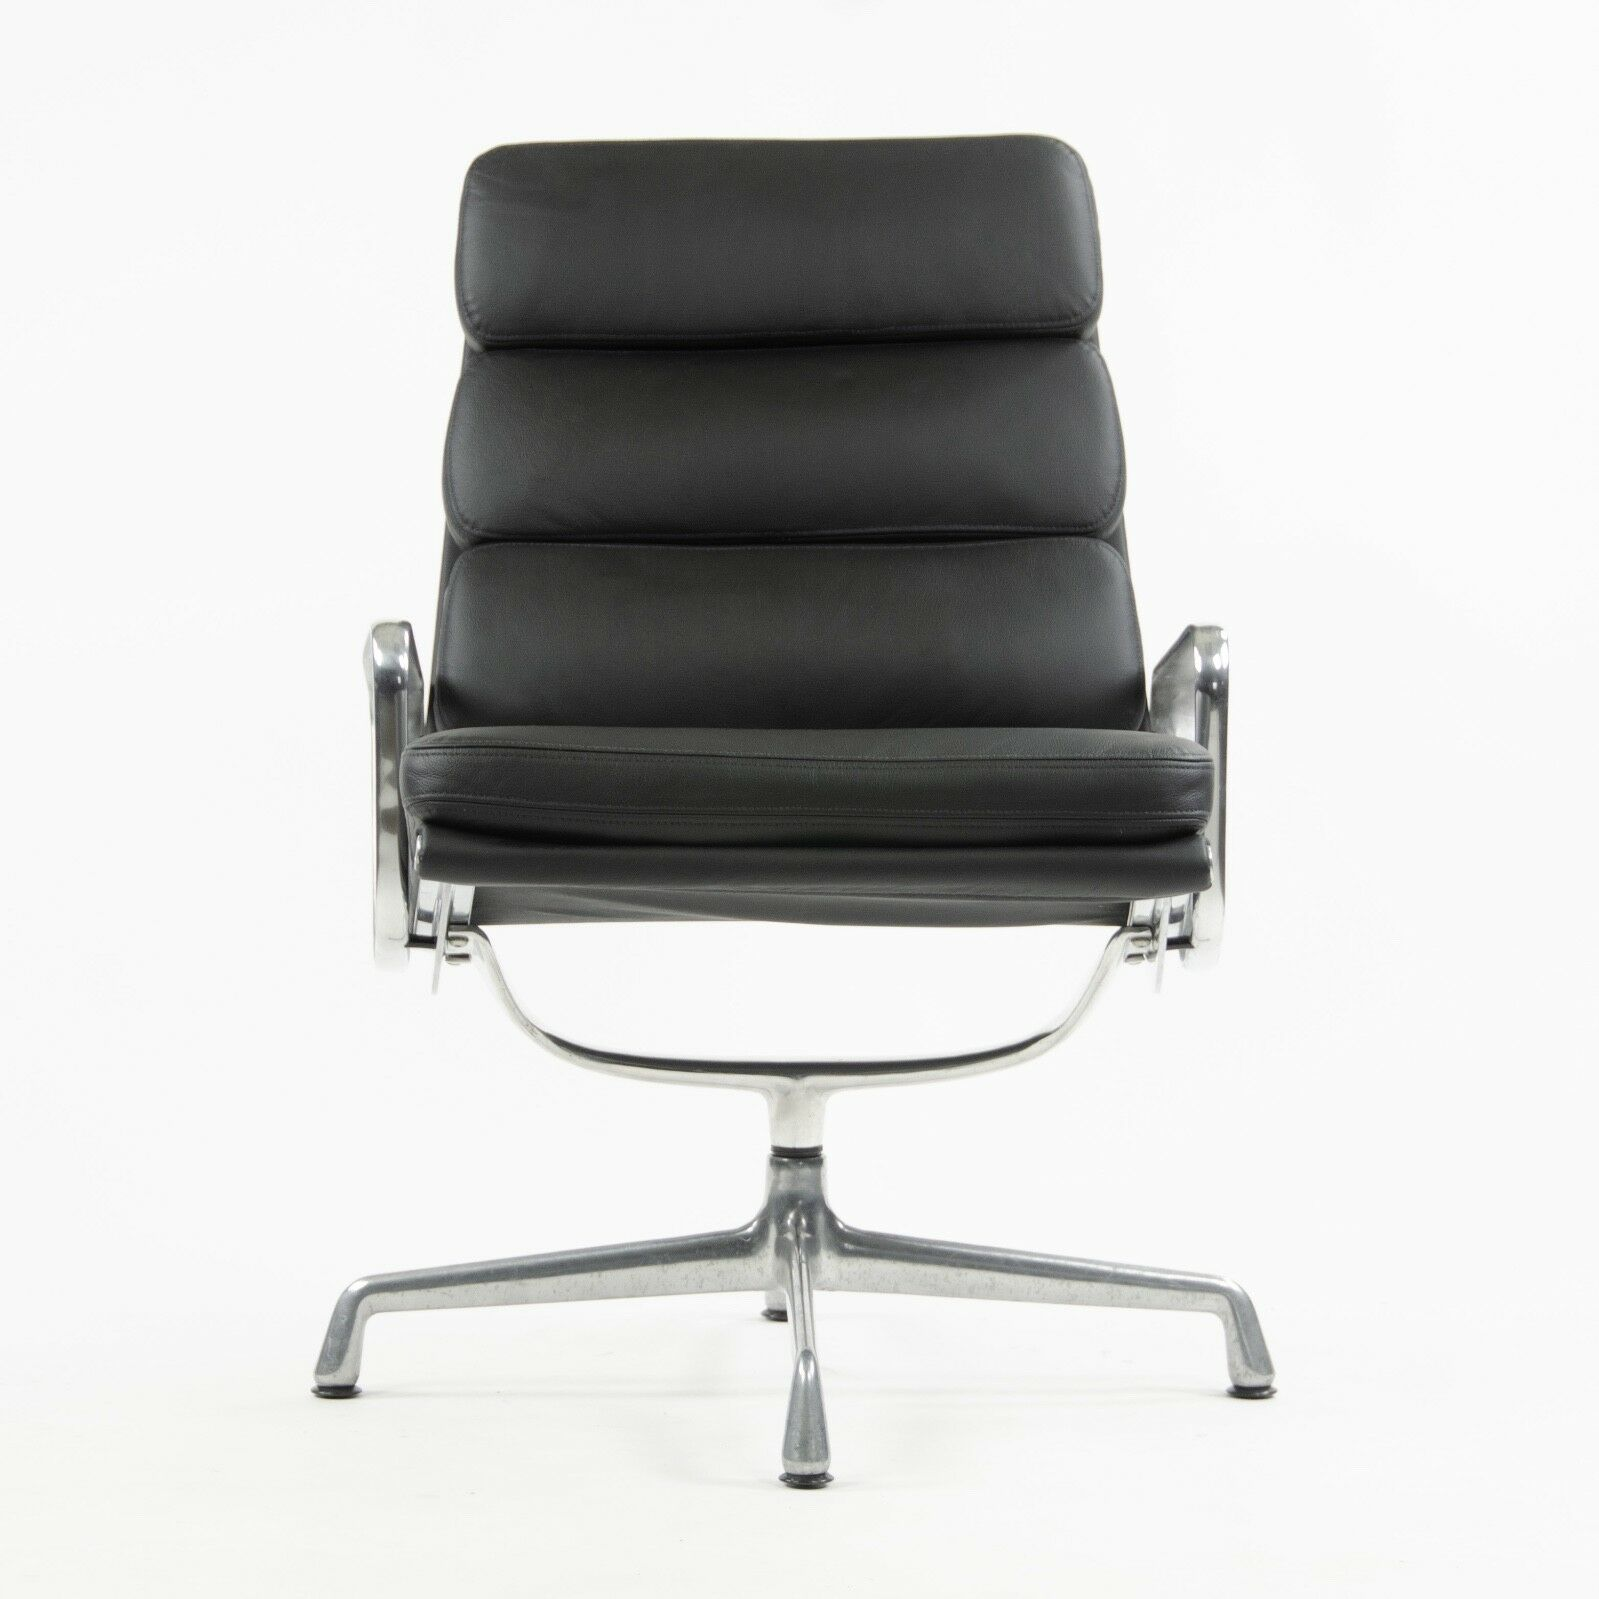 Eames Chair Herman Miller Ebay Details About Vintage Eames Herman Miller Soft Pad Aluminum Group Lounge Chair Black